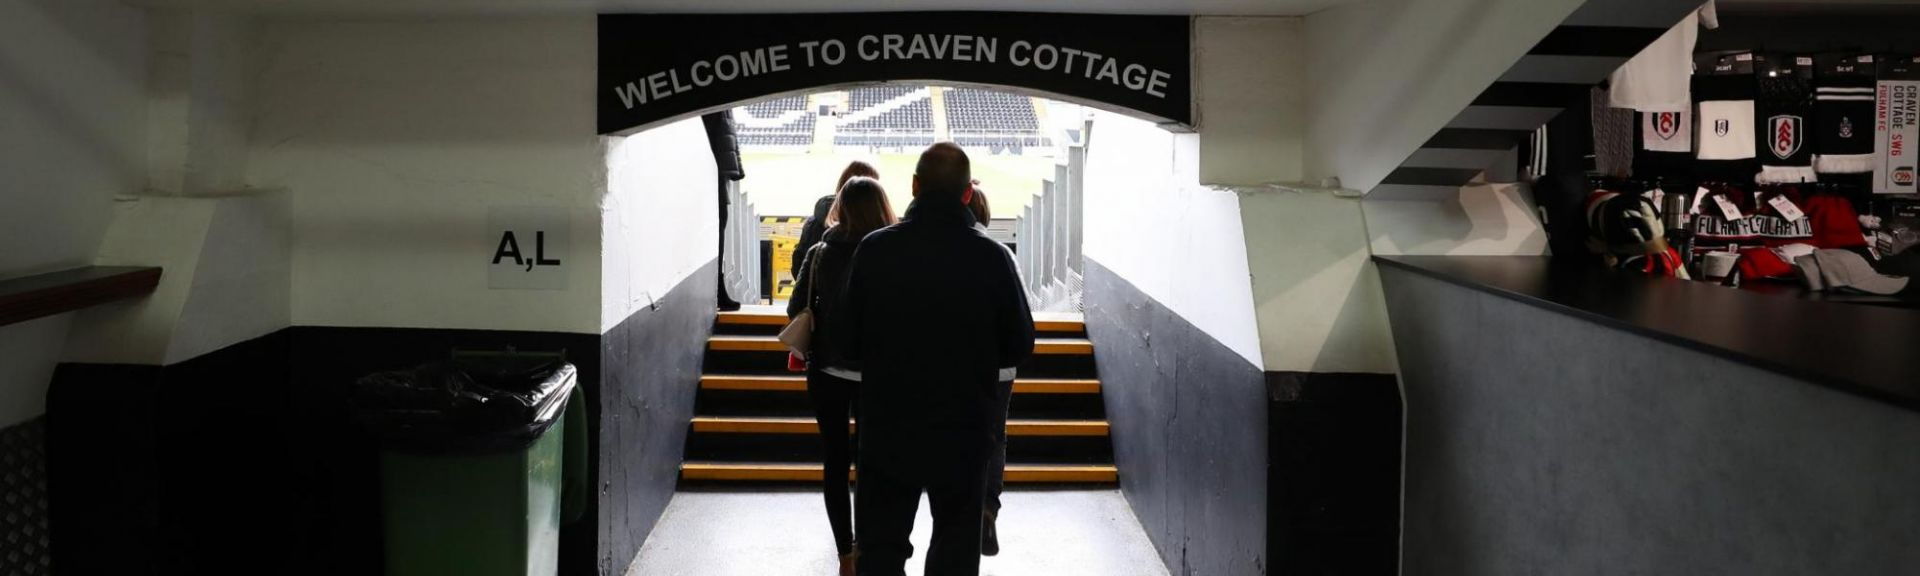 Tunnel at Craven Cottage stadium